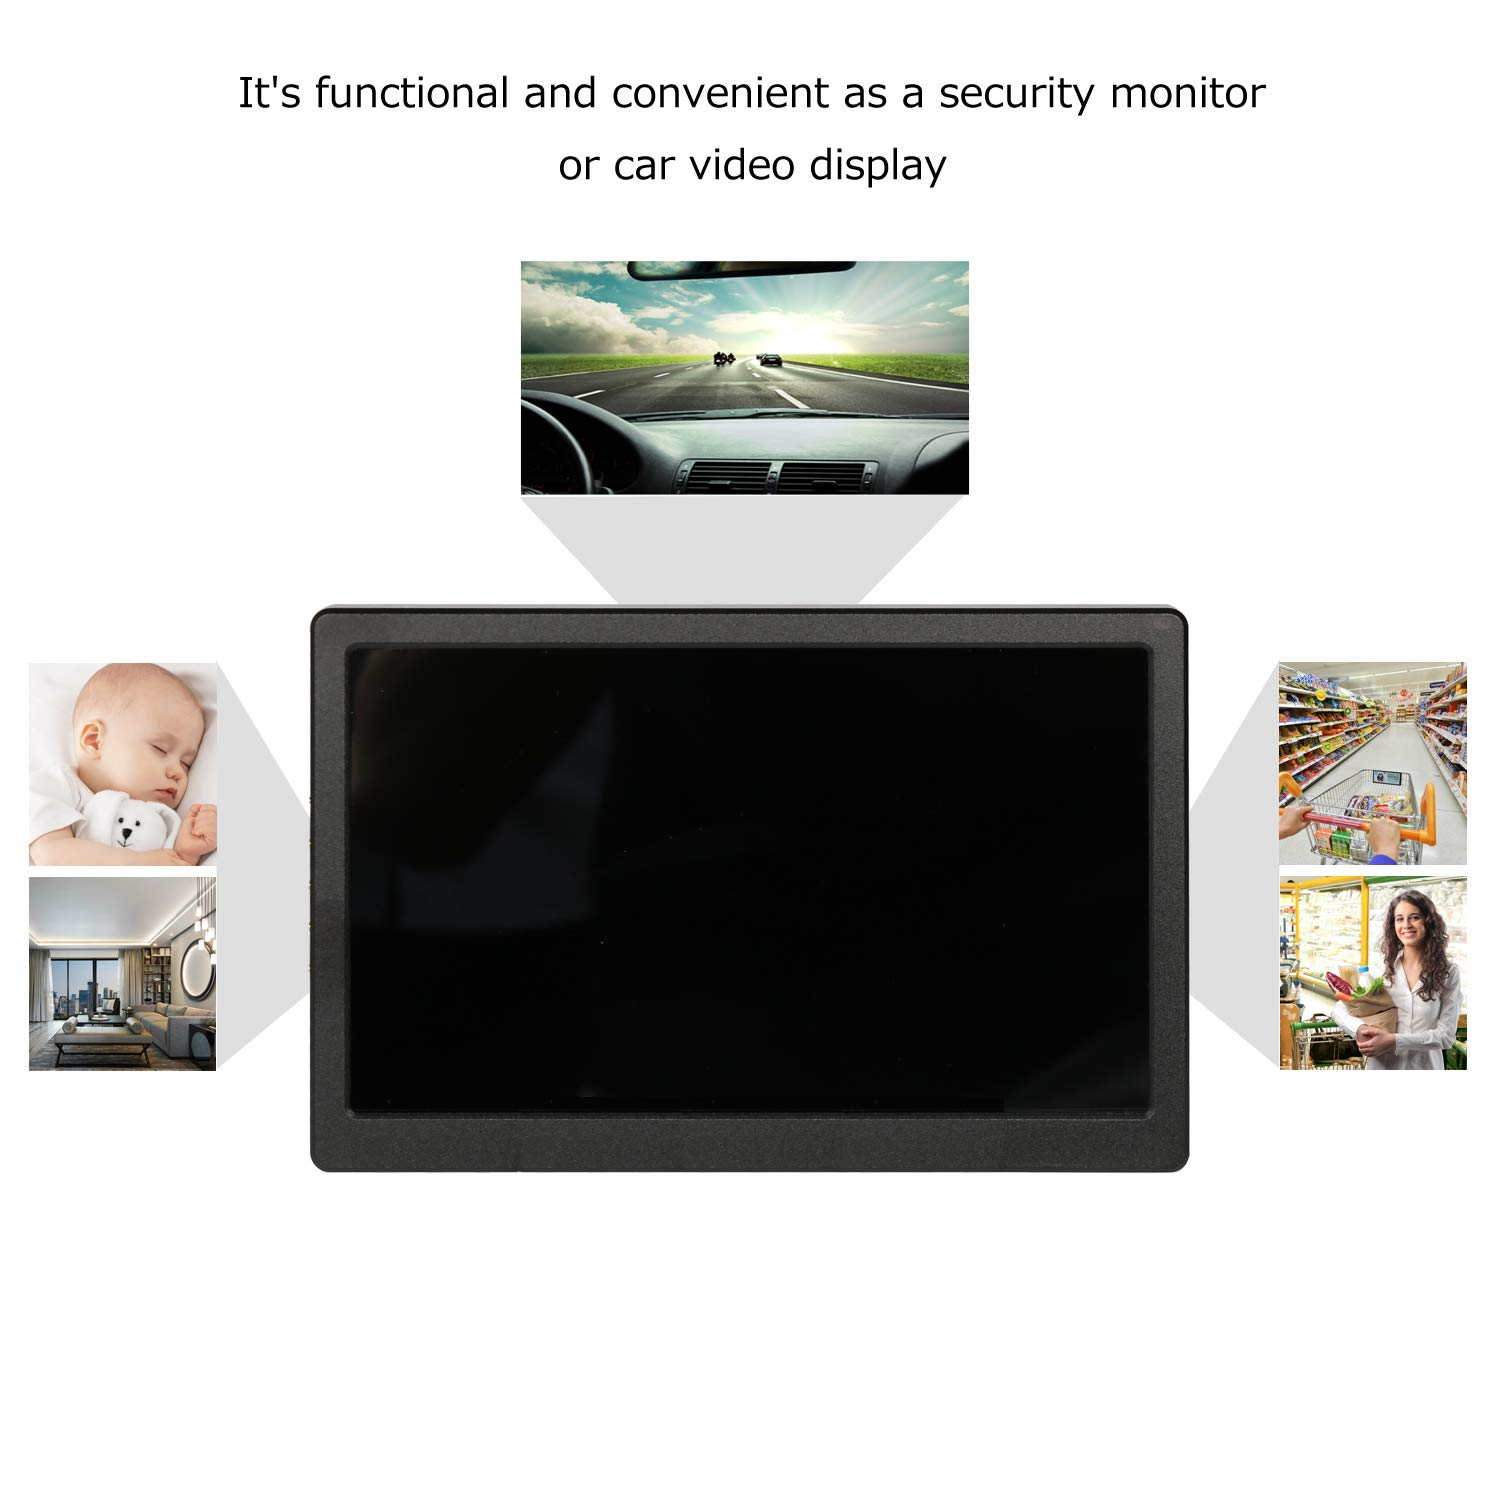 Portable Screen HDMI Monitor 1024×600 IPS Portable Display Monitor Built in Speaker for Raspberry Pi Computer Laptop PS3 PS4 Xbox one Ns xbox360 Black by UPERFECT (Image #6)